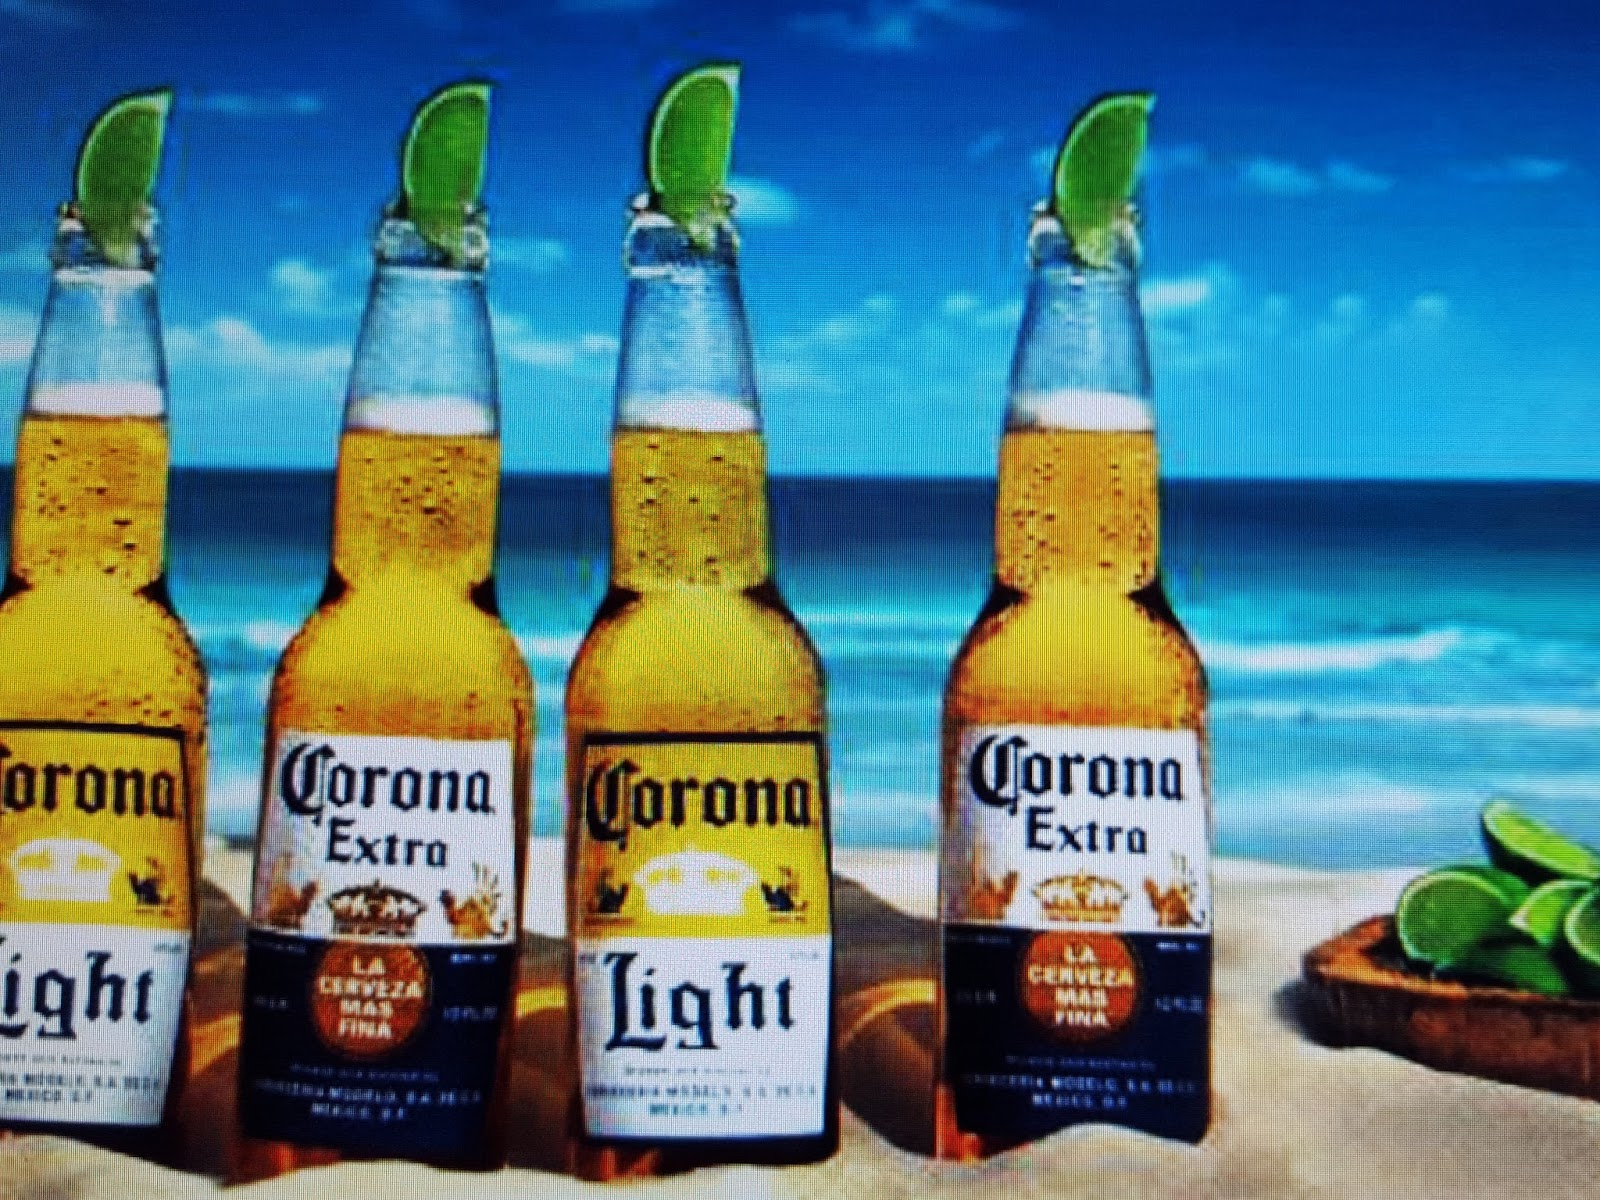 corona extra strategy We are passionate producers of iconic beer, wine and spirits brands that consumers love from corona extra provide input to long-term strategy presentations.